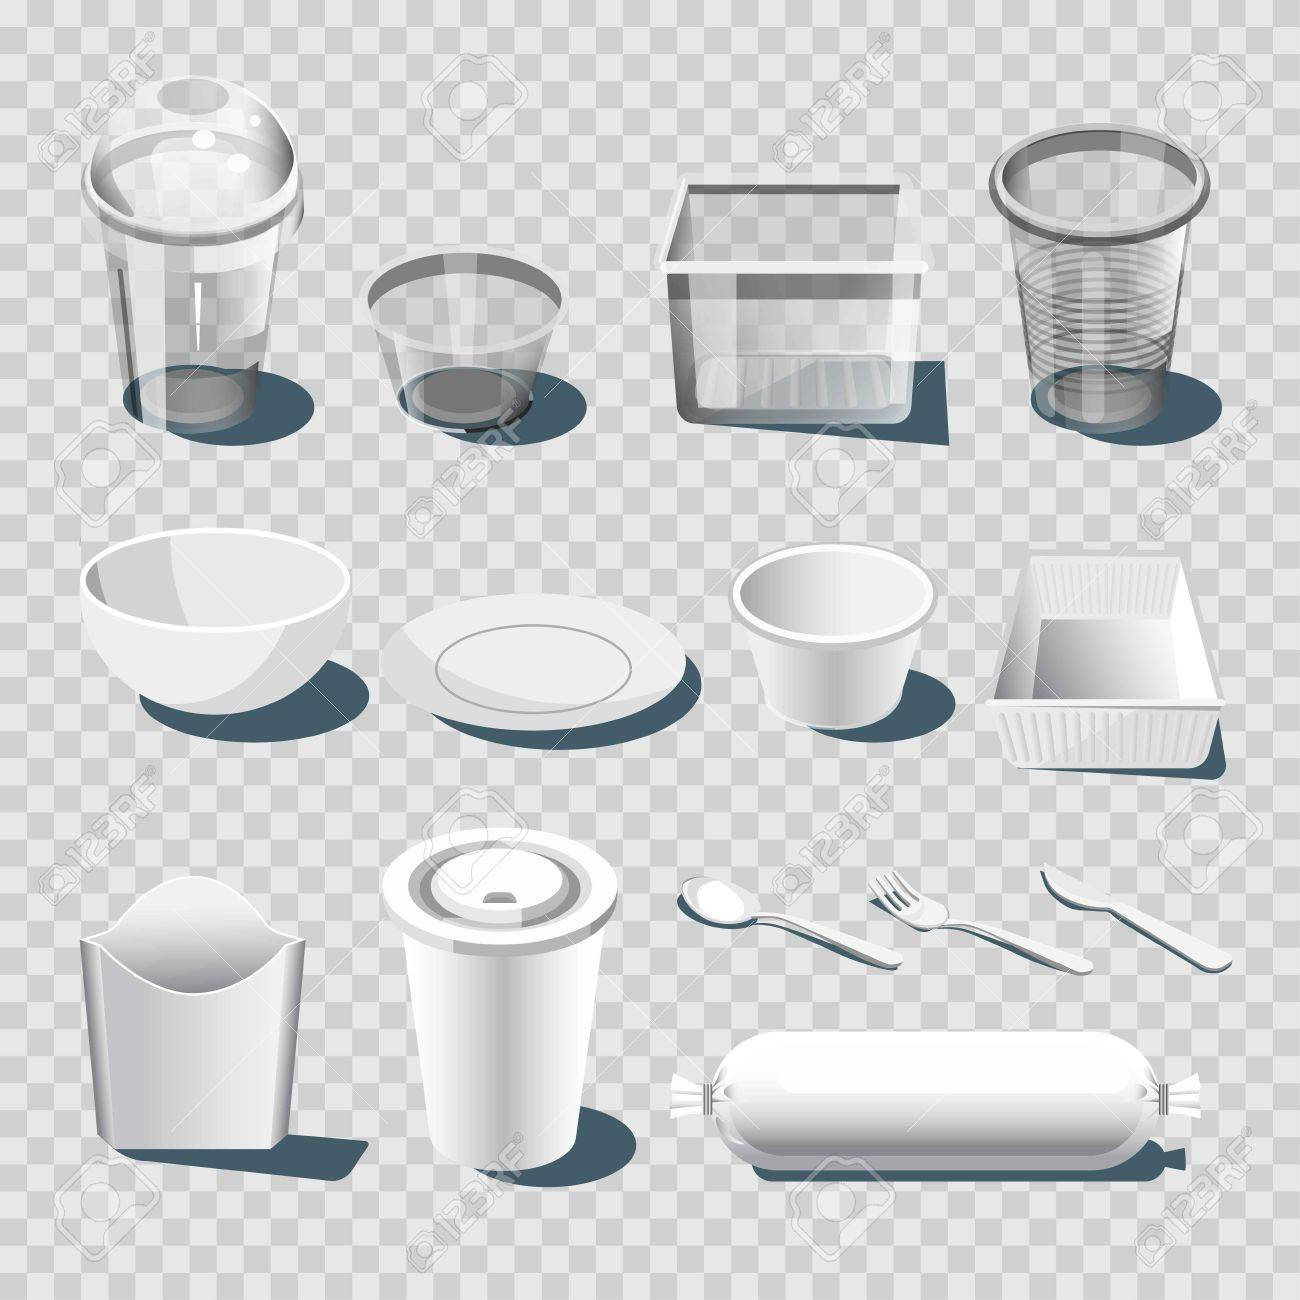 Plastic dishware or disposable tableware vector 3D isolated icons - 84999055